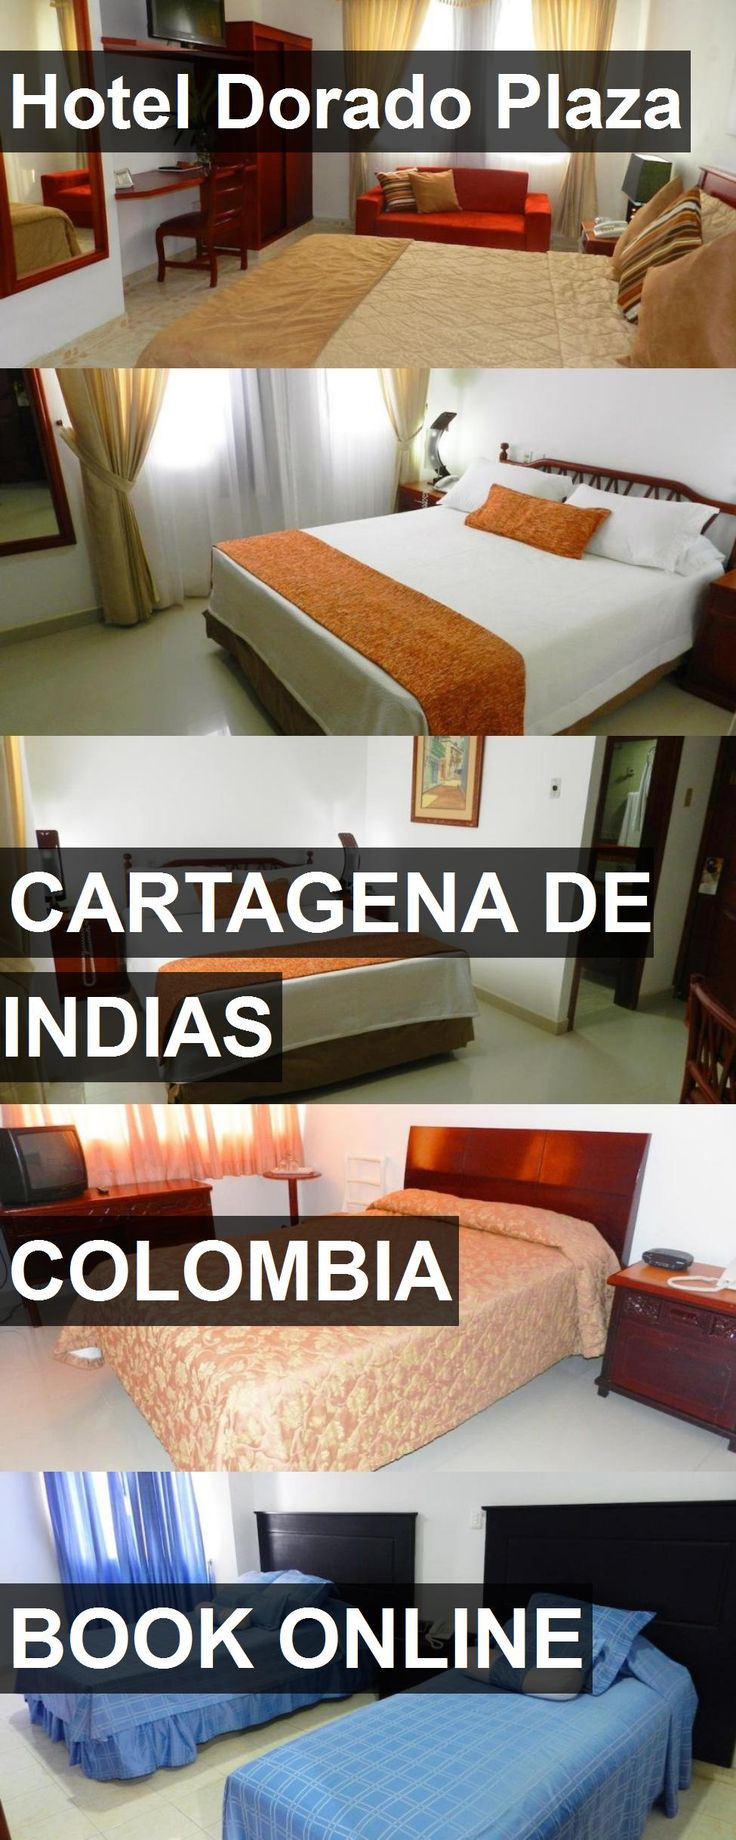 Hotel Dorado Plaza in Cartagena de Indias, Colombia. For more information, photos, reviews and best prices please follow the link. #Colombia #CartagenadeIndias #travel #vacation #hotel